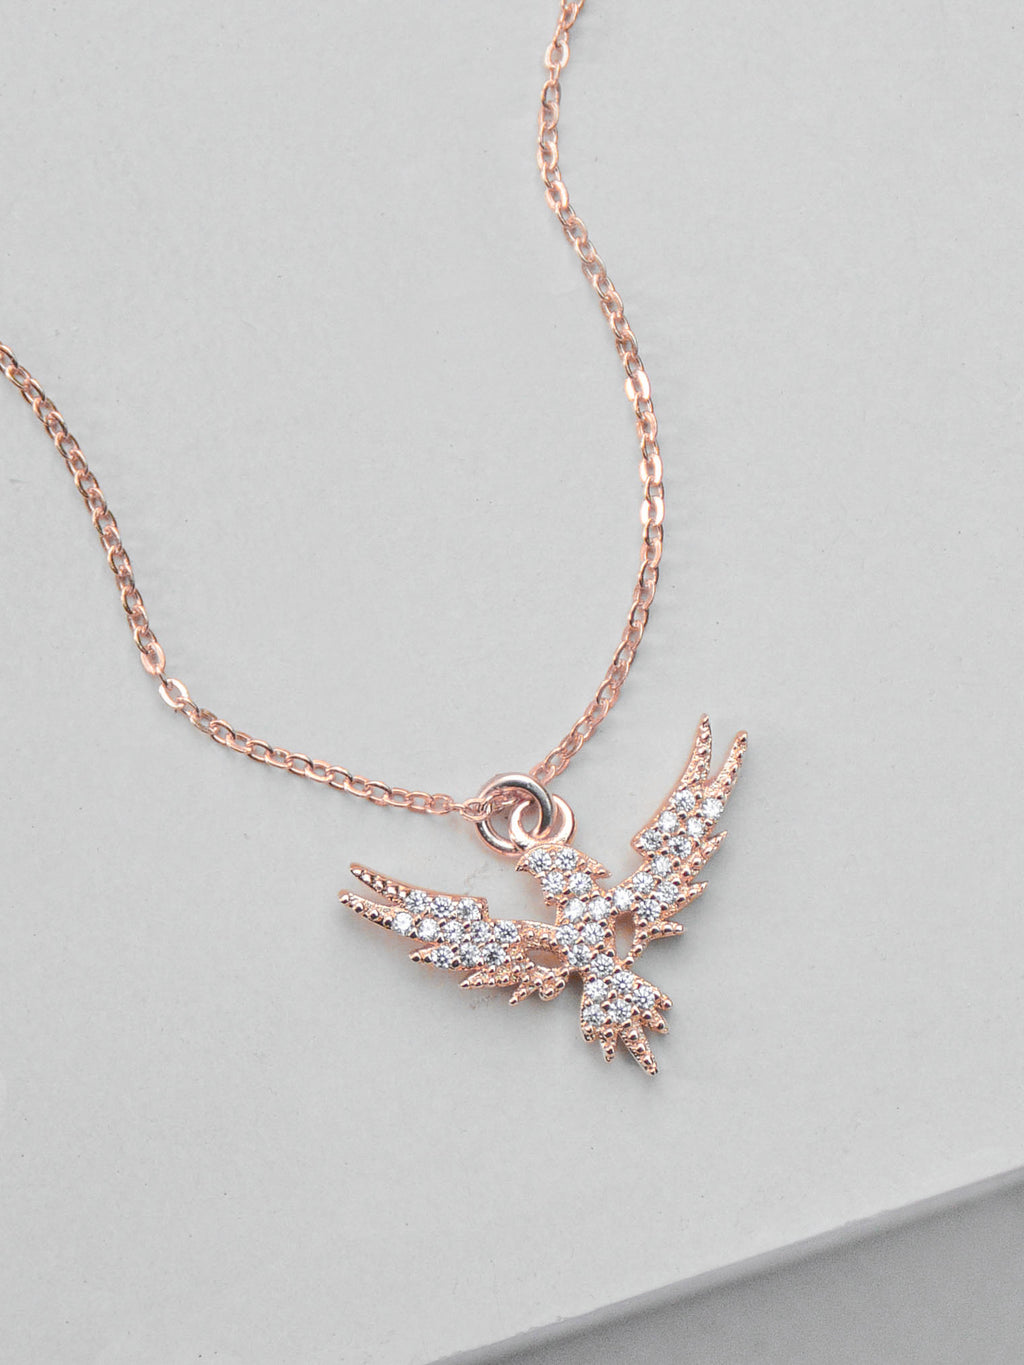 Rose Gold Phoenix CZ Charm Necklace by The Faint Hearted Jewelry